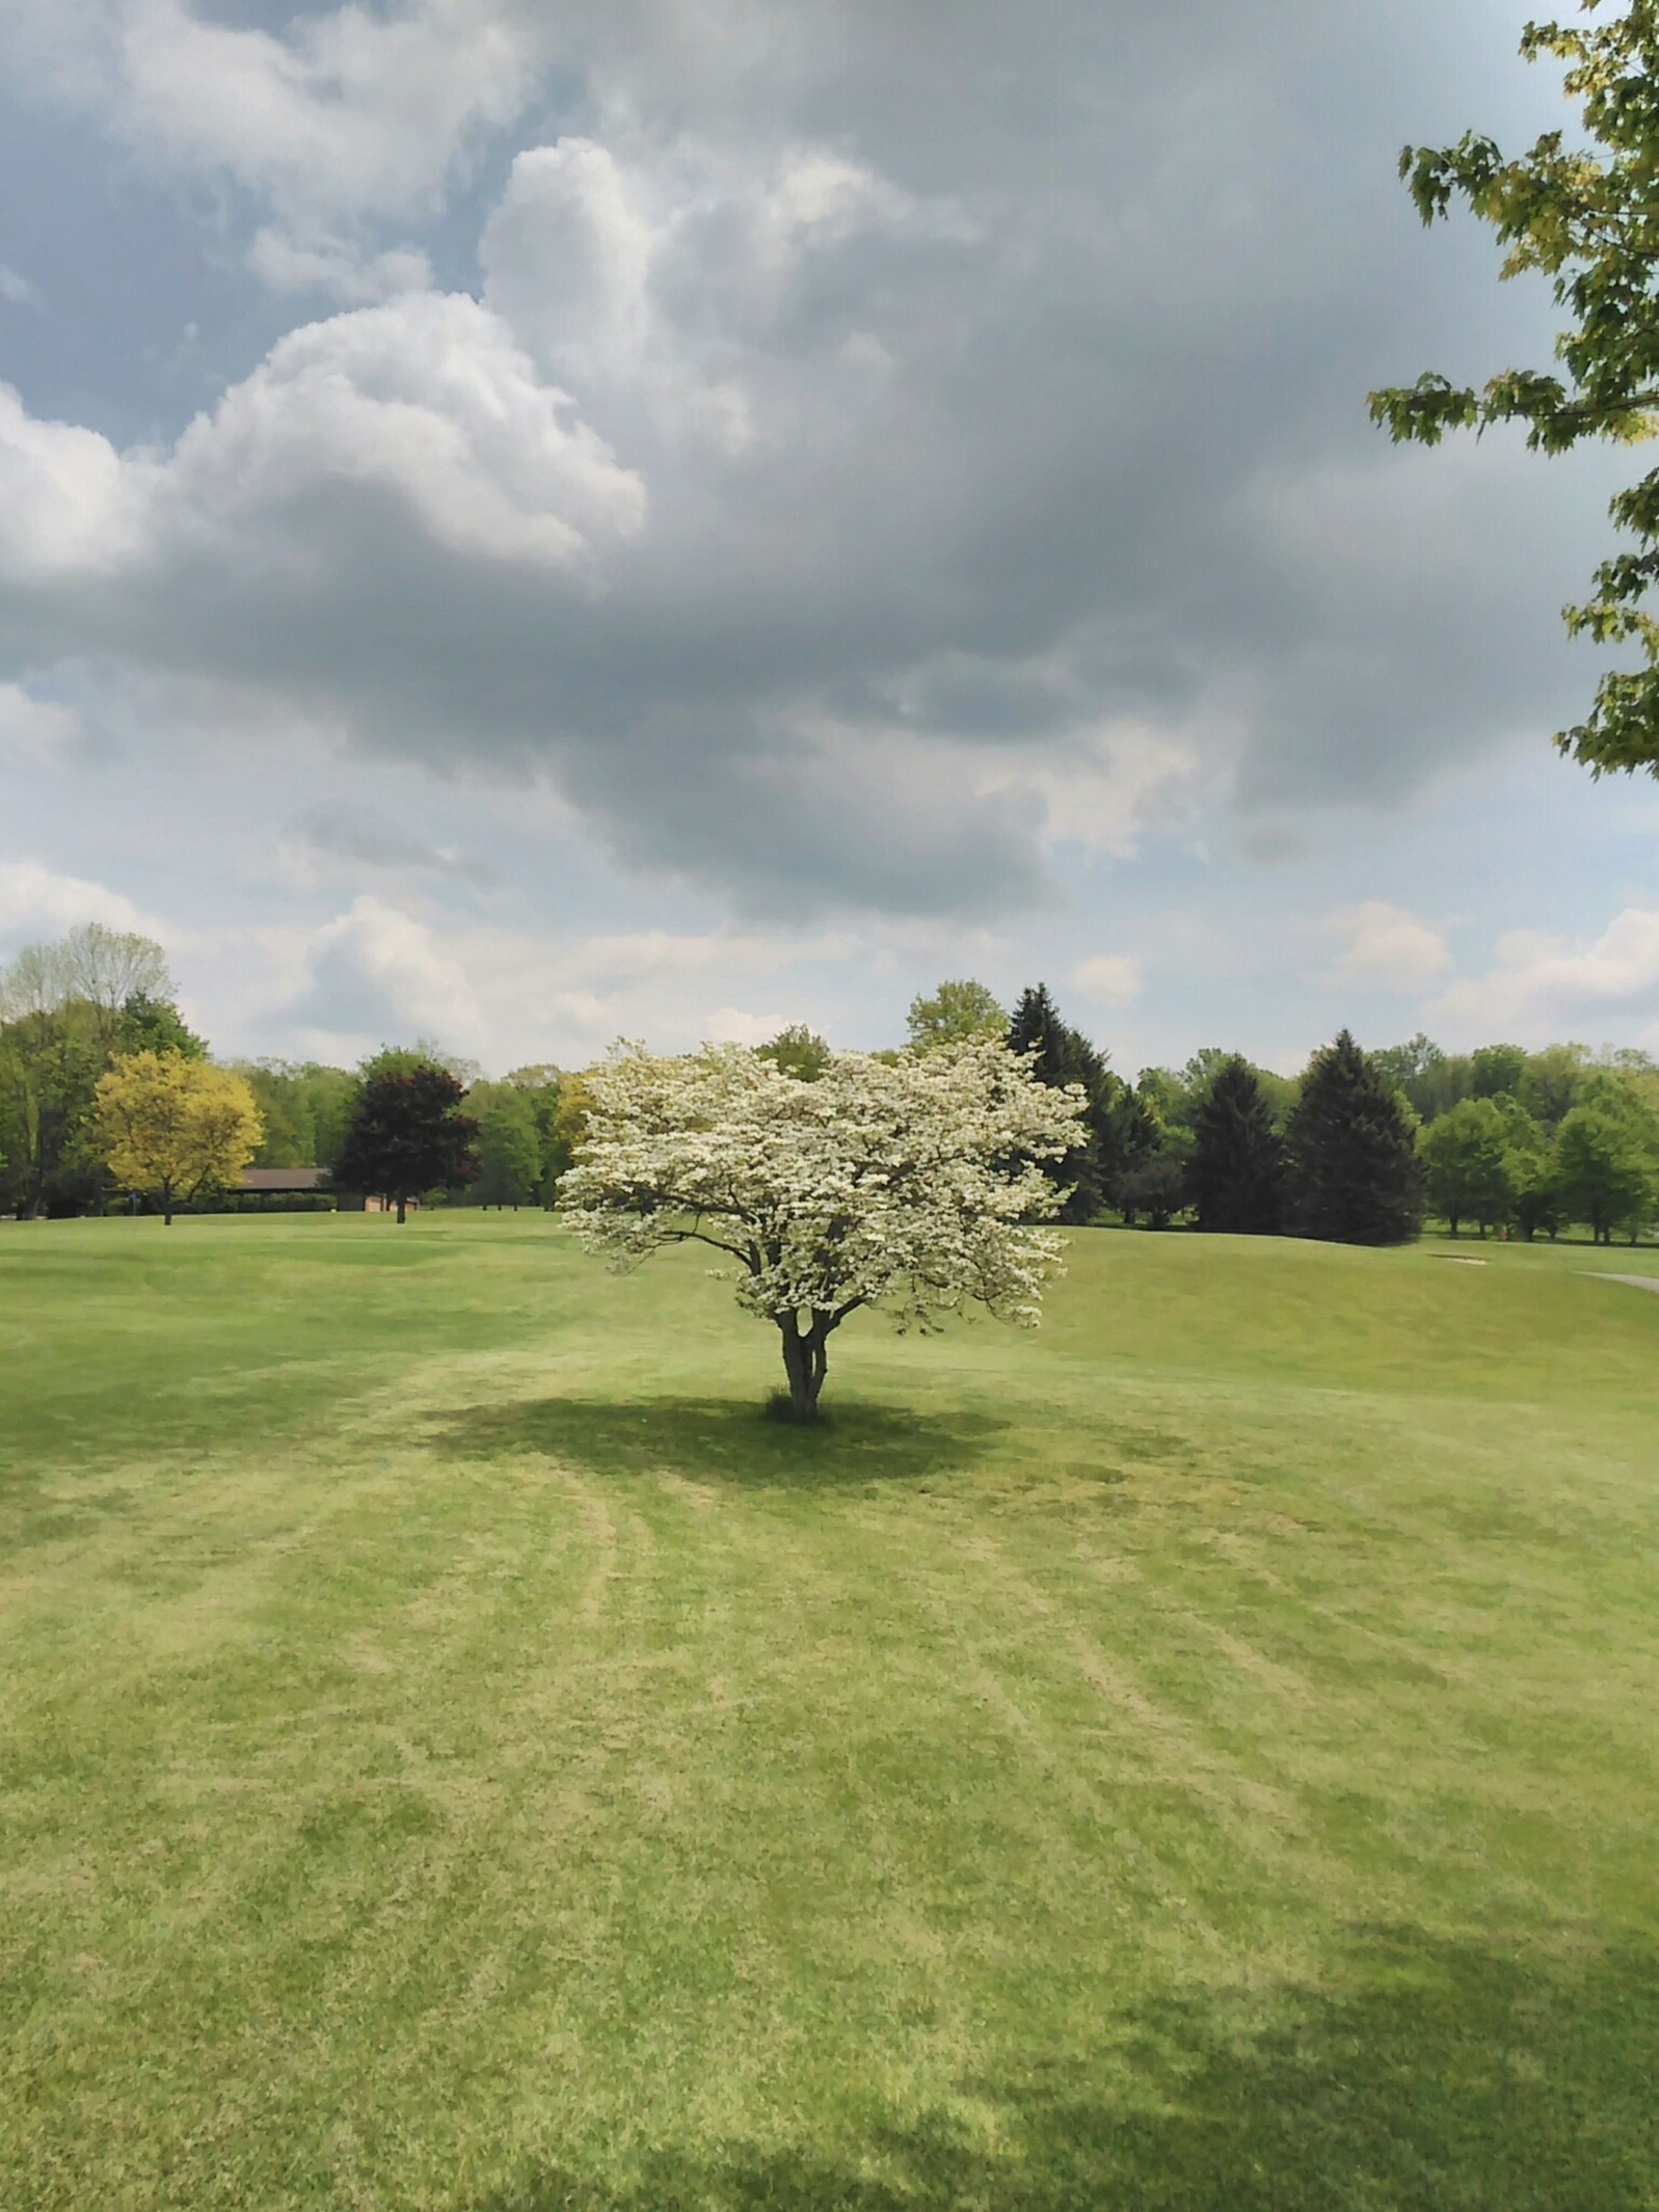 tree, sky, grass, cloud - sky, tranquil scene, tranquility, green color, landscape, field, cloudy, growth, scenics, cloud, nature, beauty in nature, grassy, day, idyllic, outdoors, green